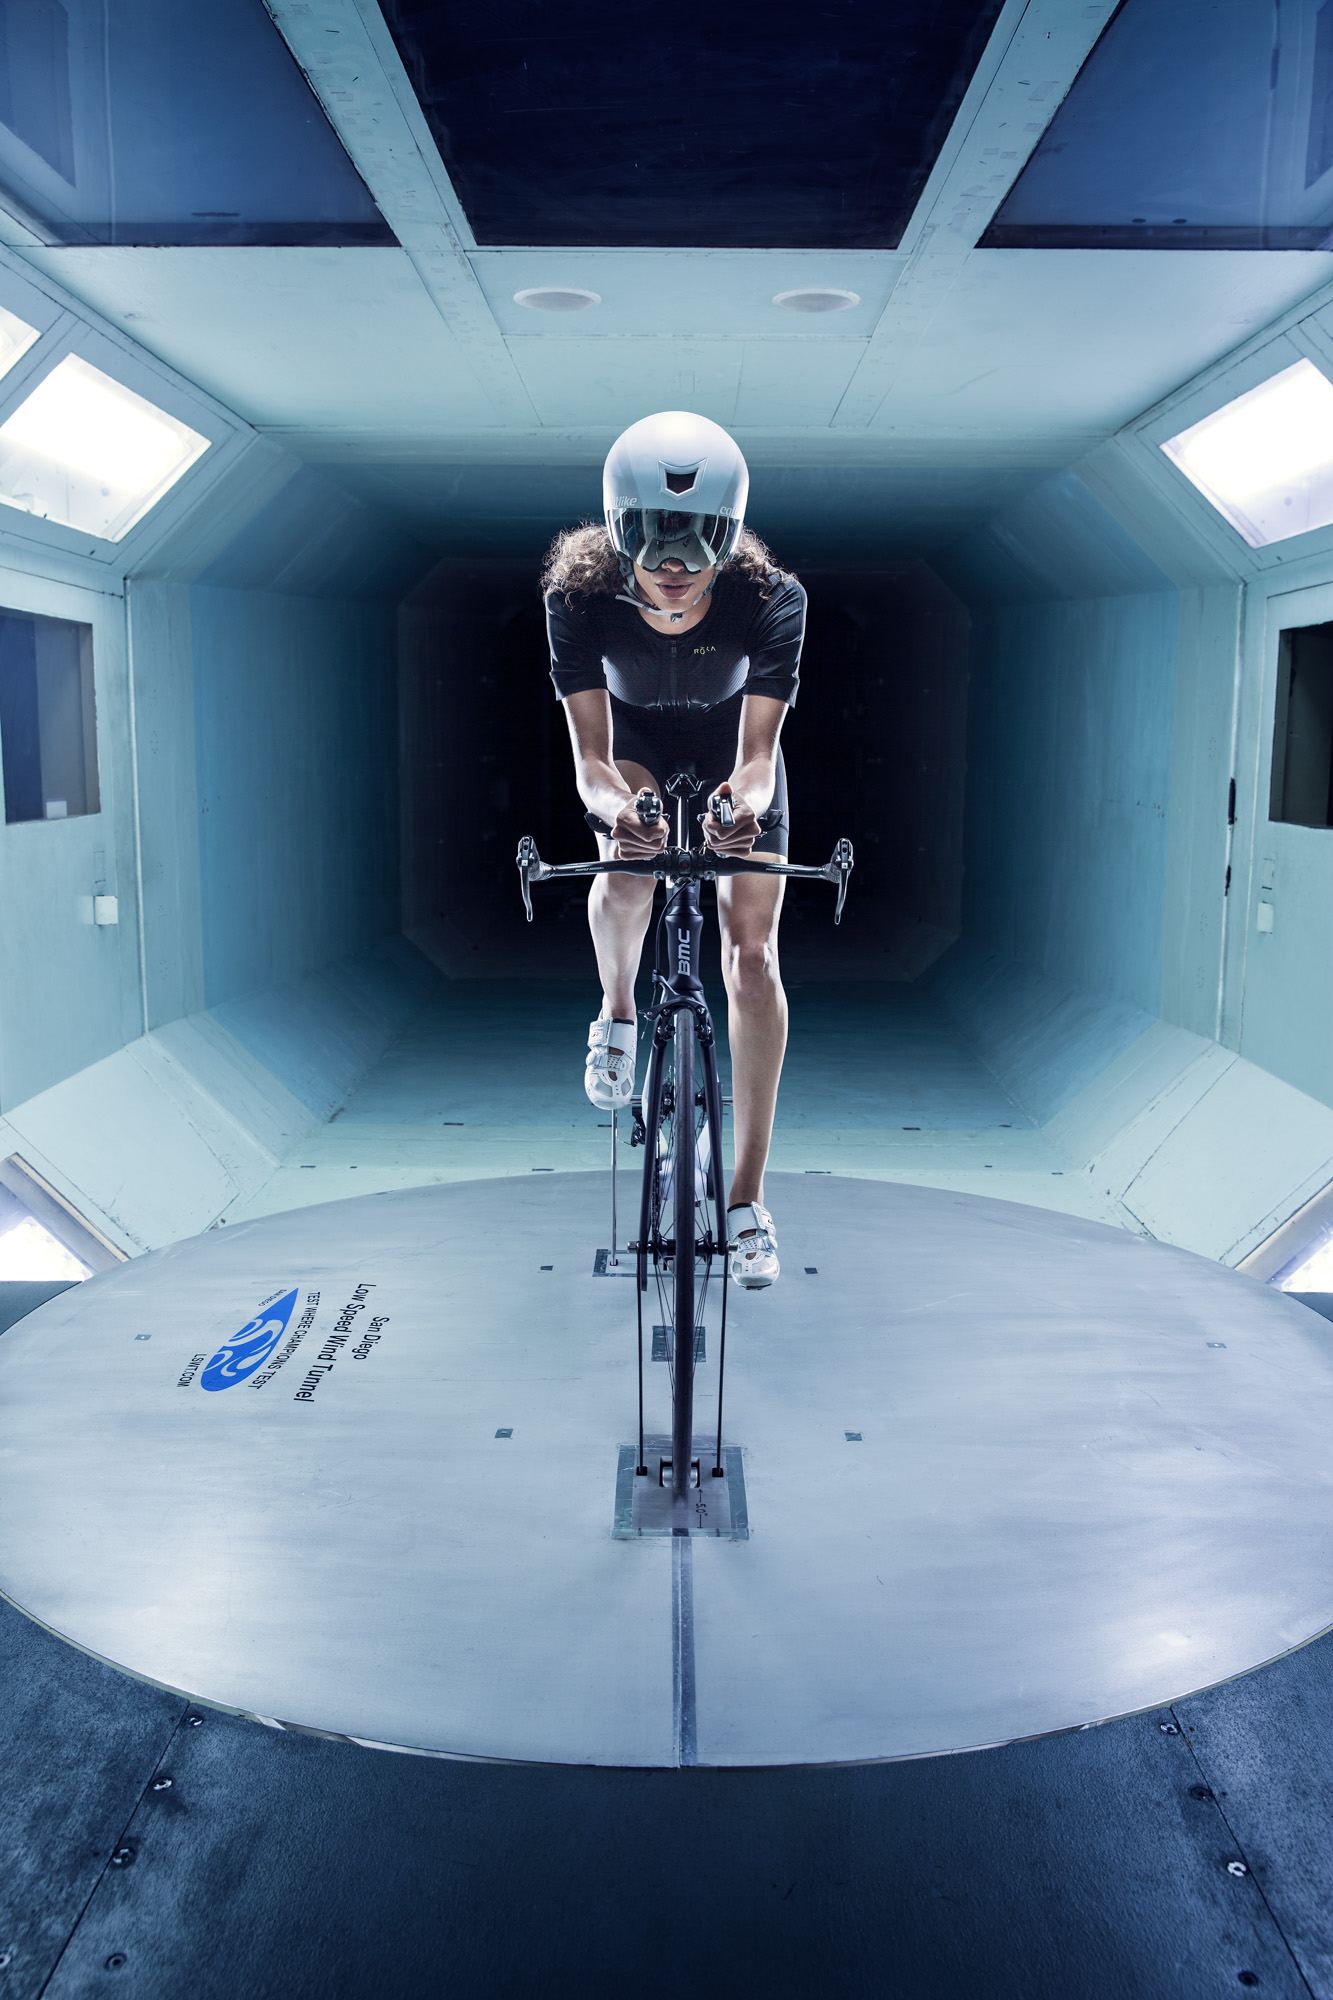 Triathlete_WindTunnel_0112_v2